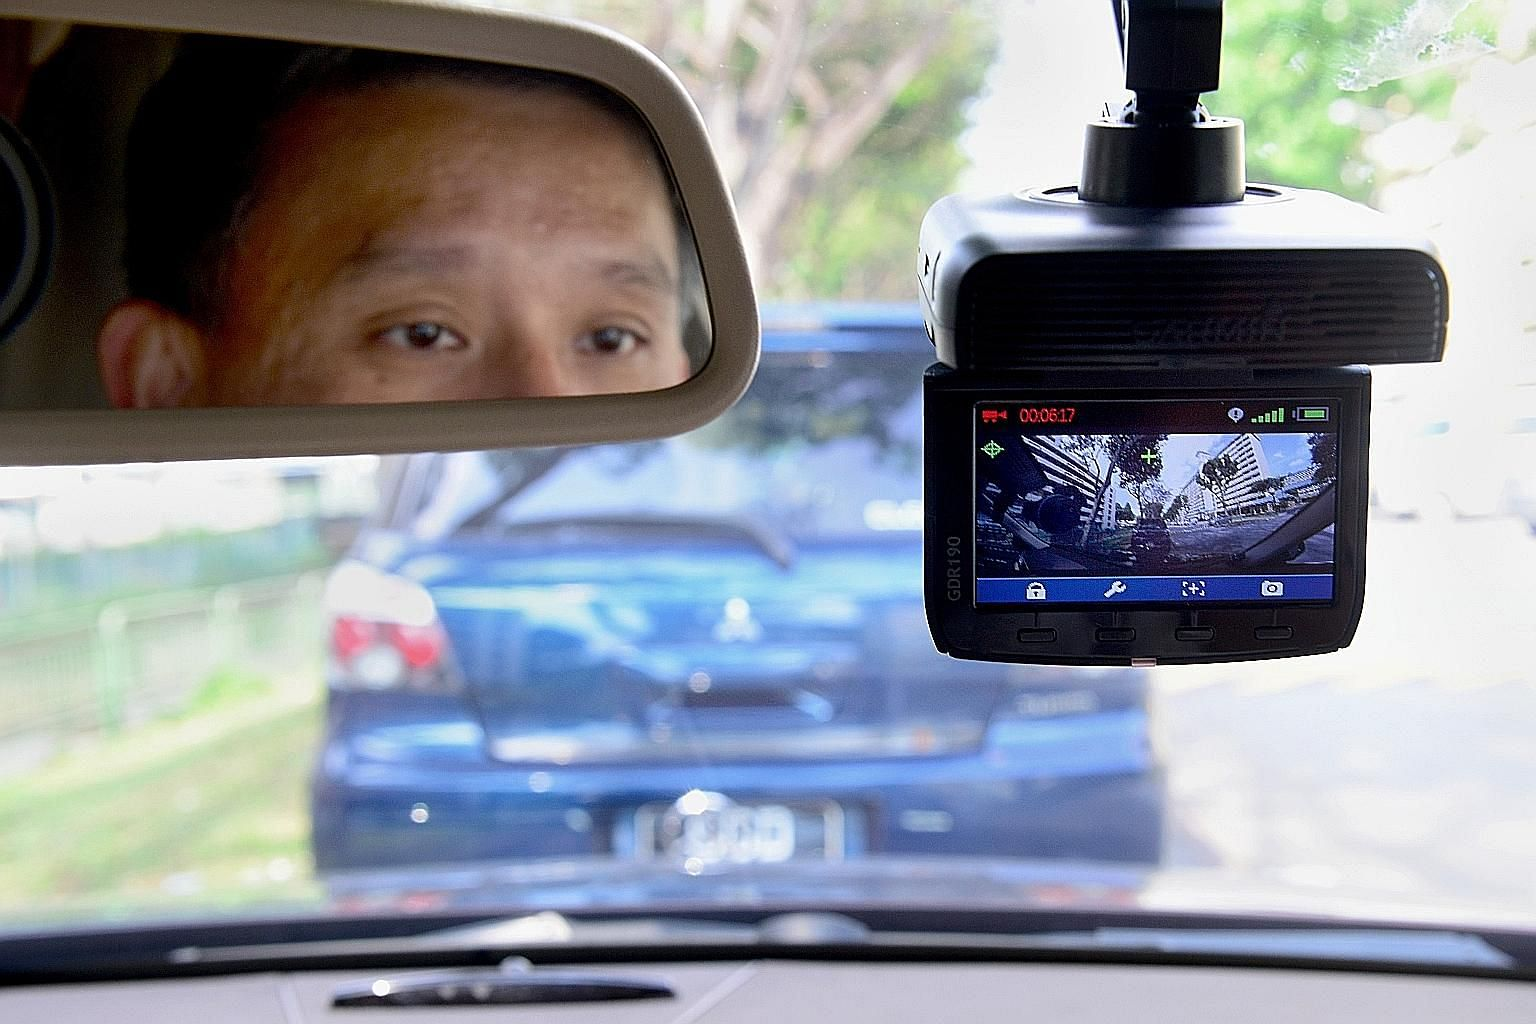 Videos captured by vehicle dashboard cameras are often used to call out irresponsible motorists, pedestrians and other road users. Between 2015 and 2018, the Traffic Police received 18,500 feedback letters of bad behaviour, some accompanied by videos